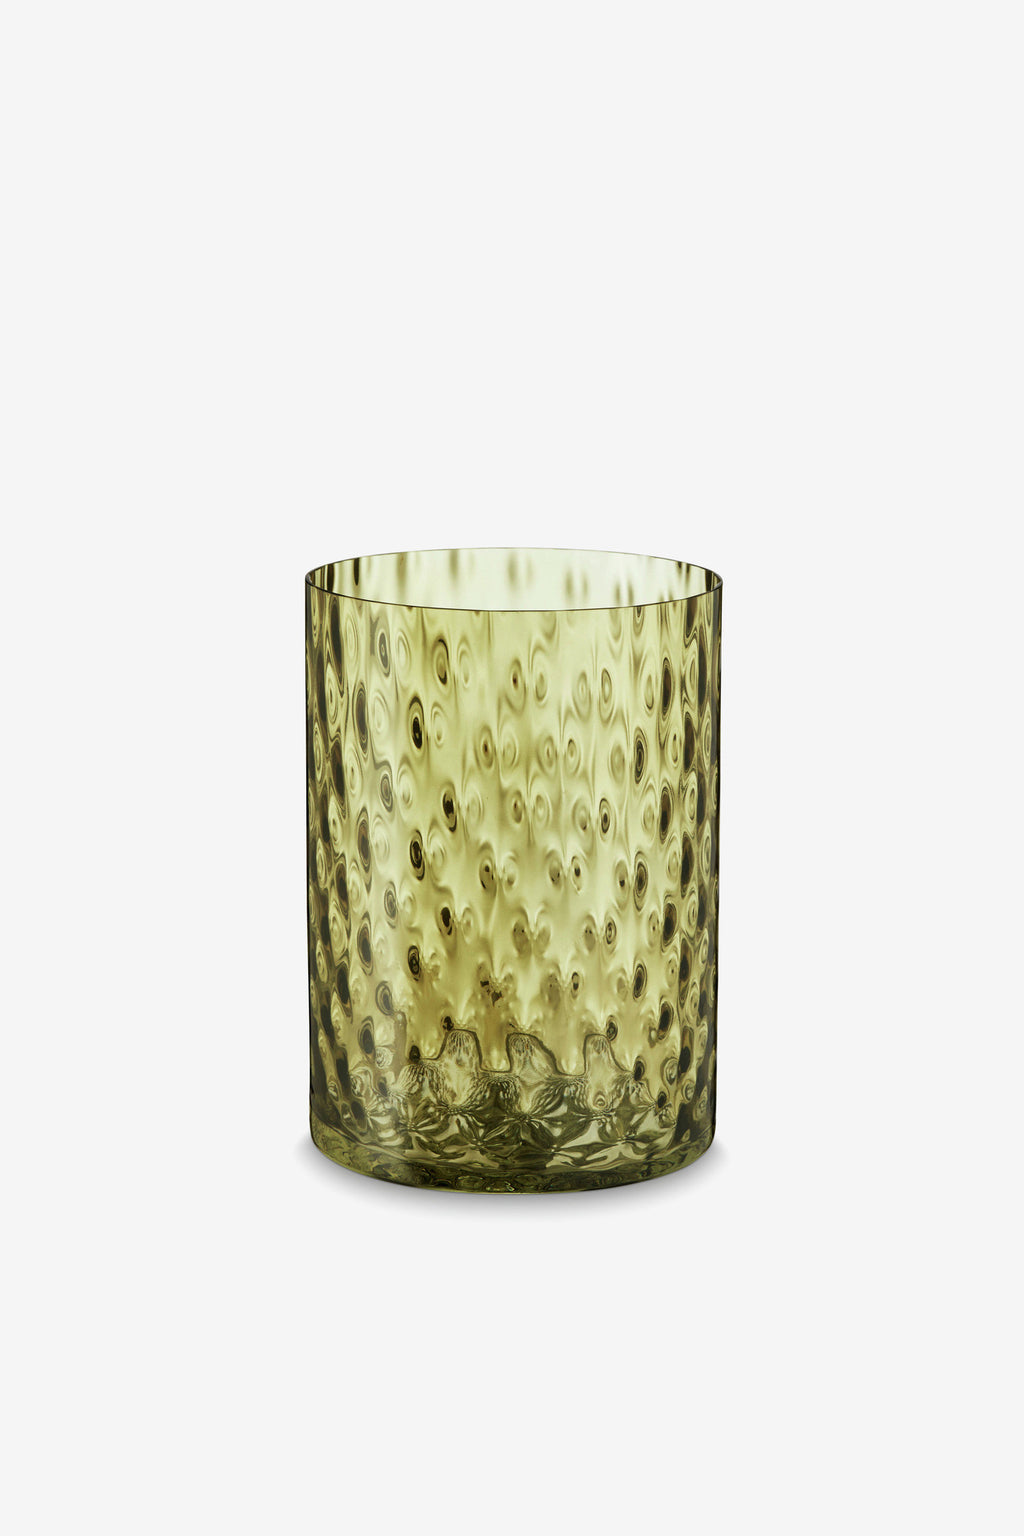 Vega Glass Vase, 20cm, Mustard, Interior, H. Skjalm P. - Six and Sons